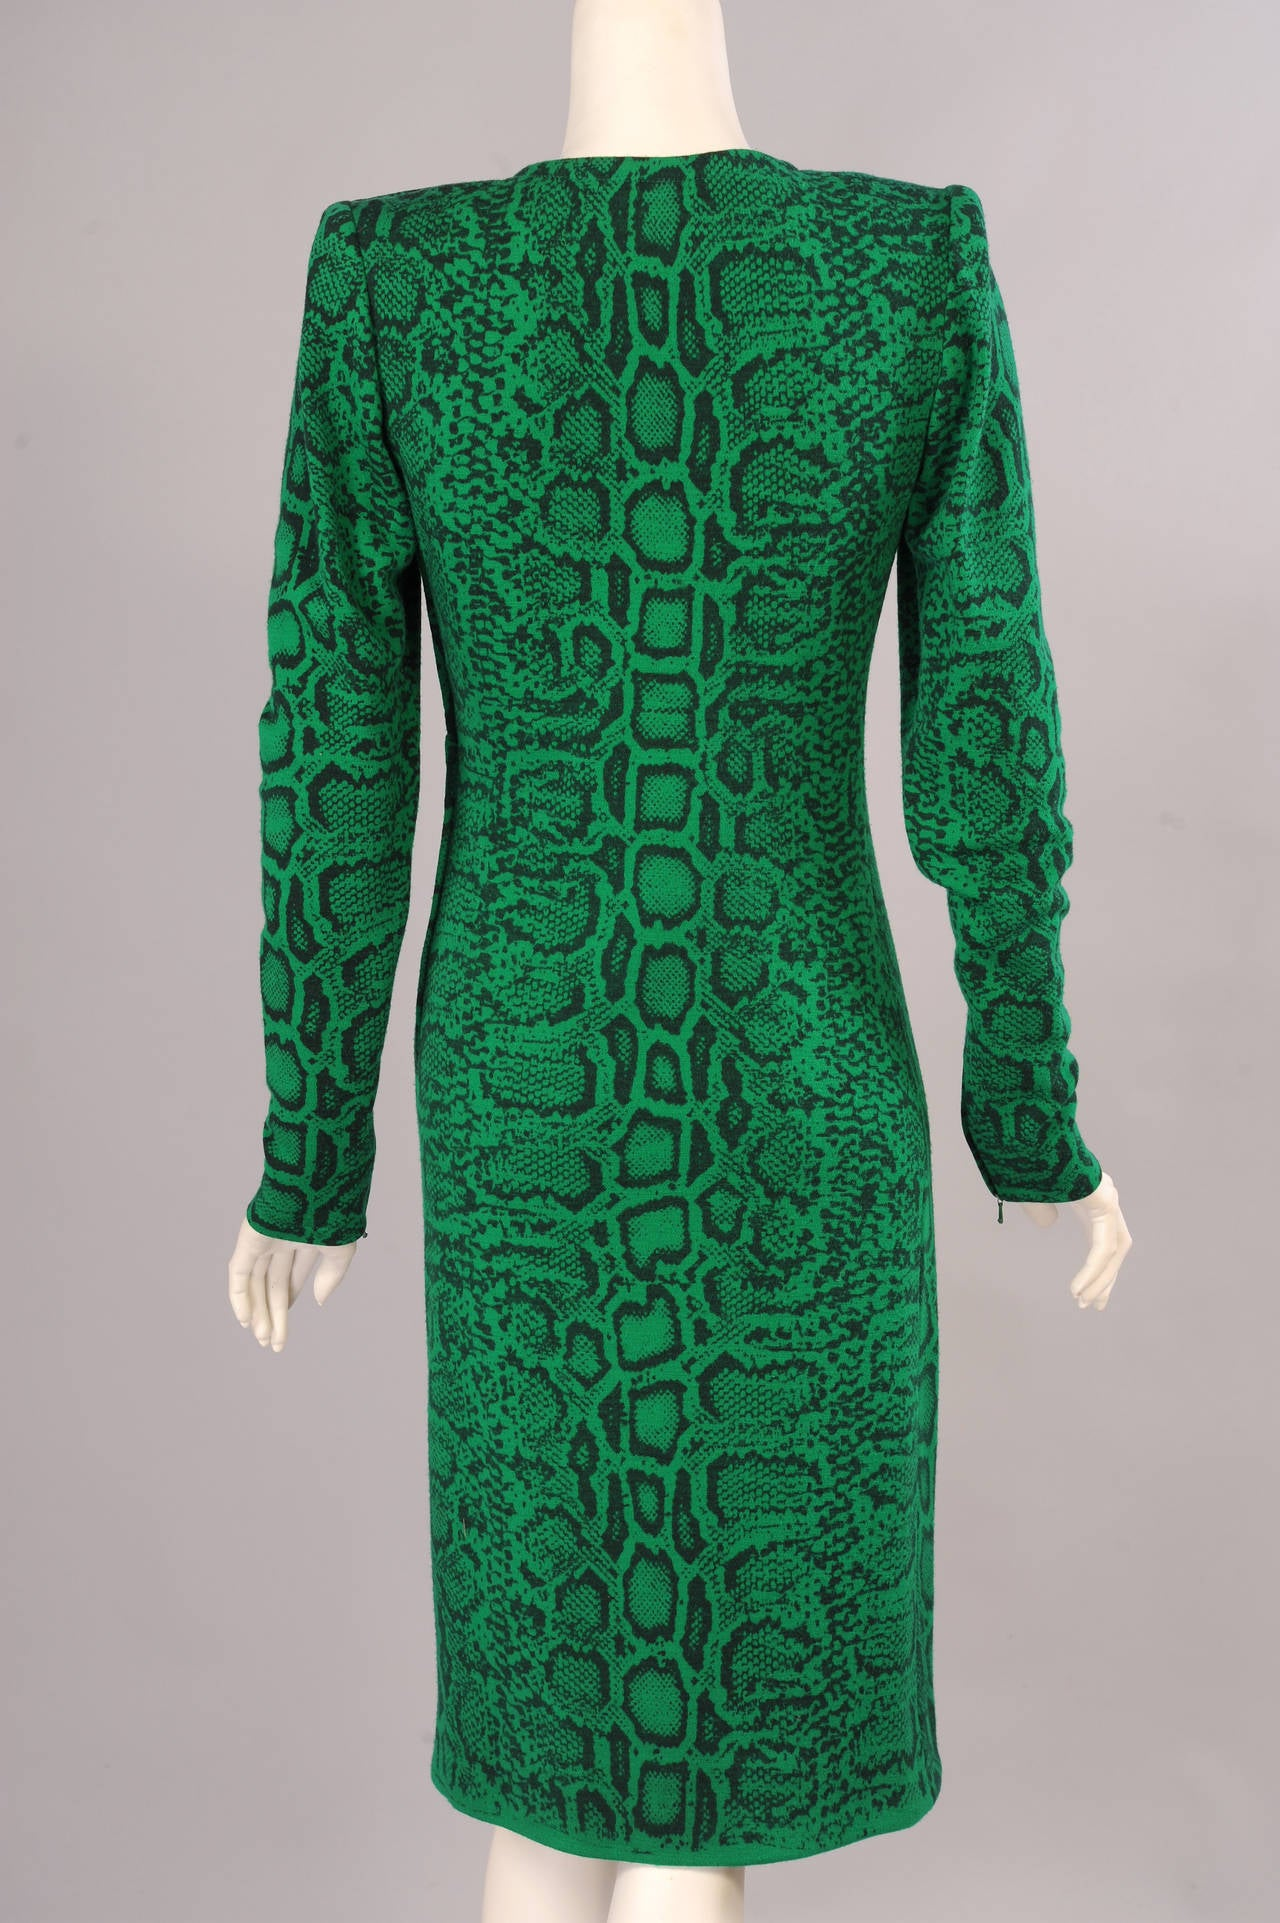 Givenchy Haute Couture Kelly Green Snakeskin Print Wool Dress, Runway Label In Excellent Condition For Sale In New Hope, PA